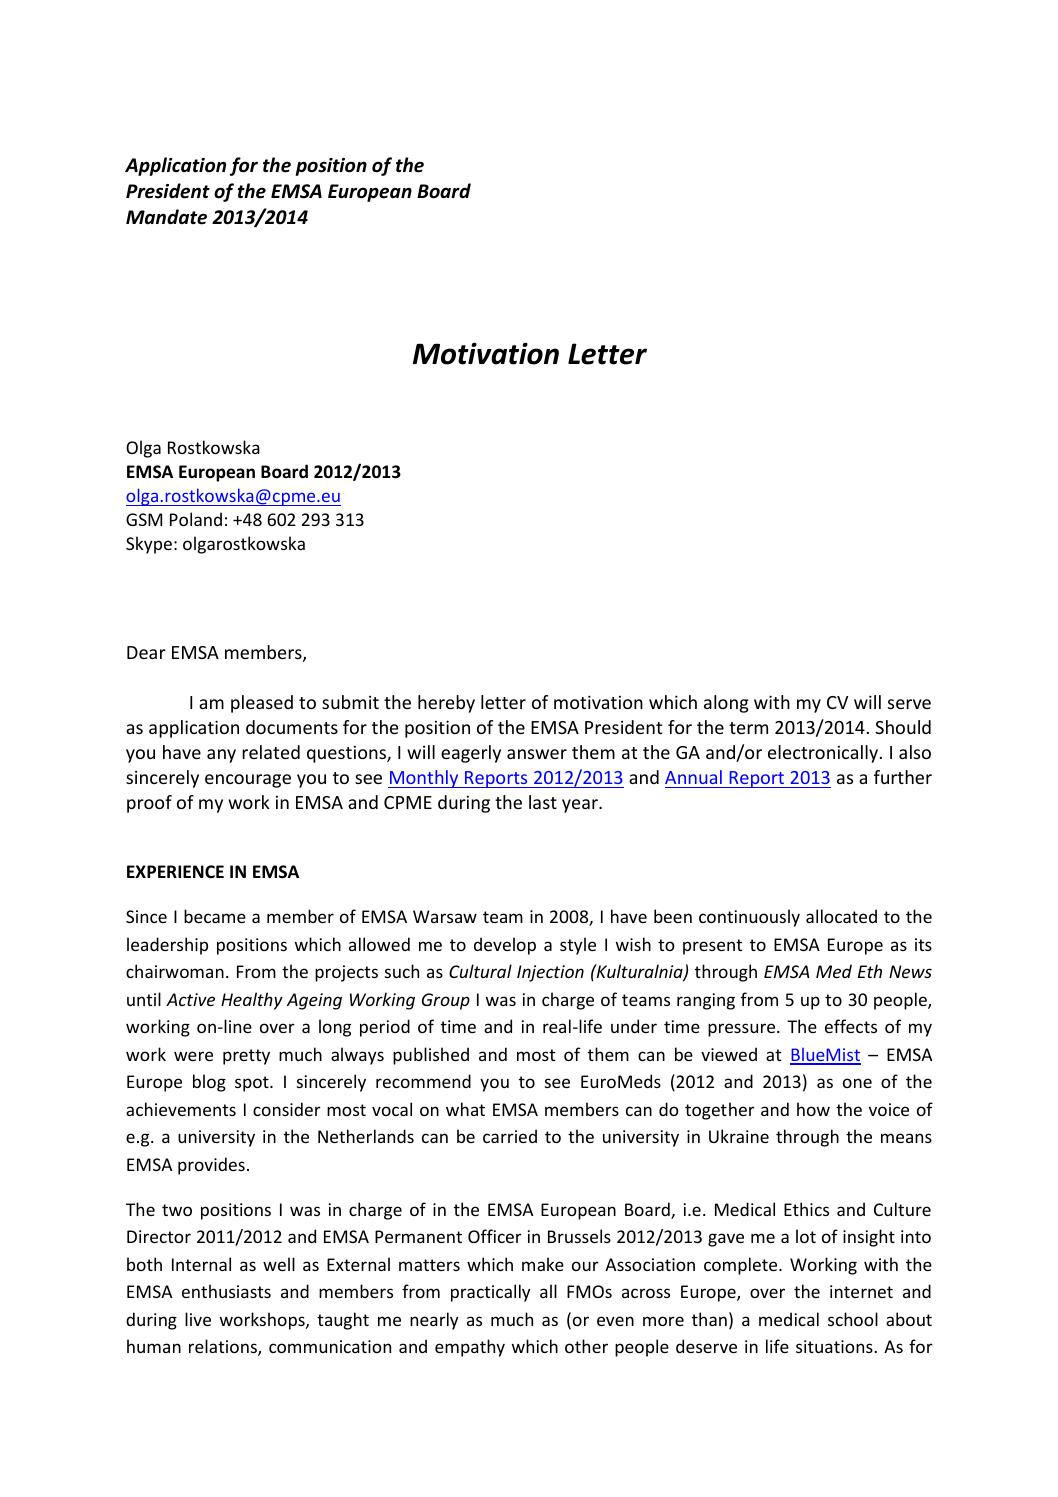 motivation letter emsa presidency 2013 2014 olga